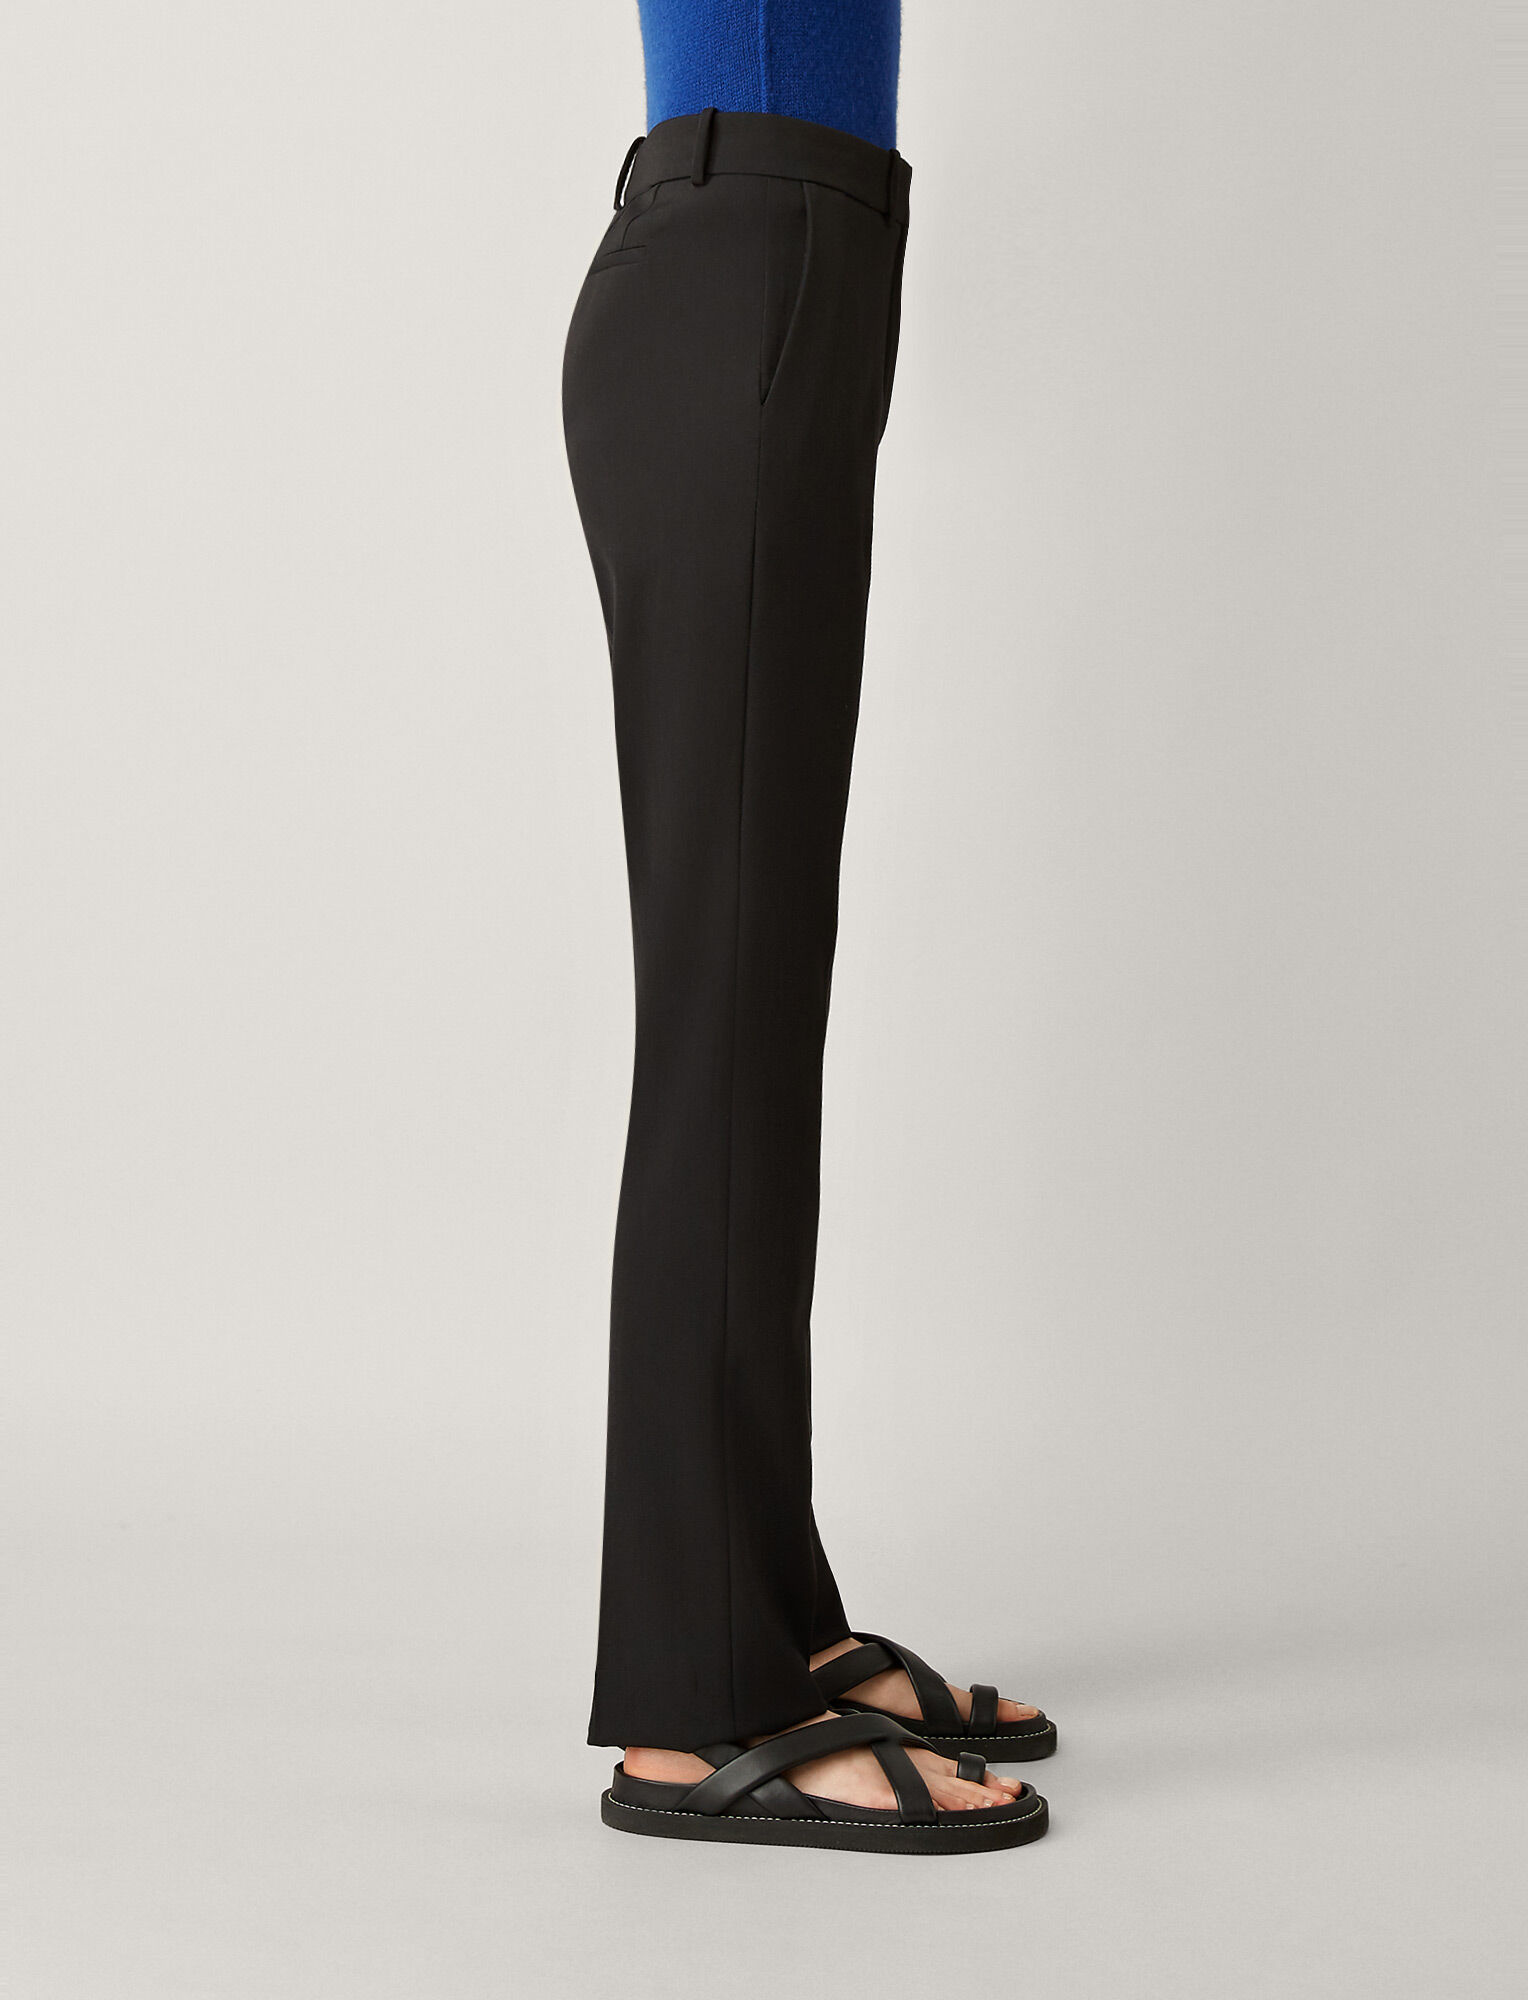 Joseph, Cole Comfort Wool Trousers, in BLACK